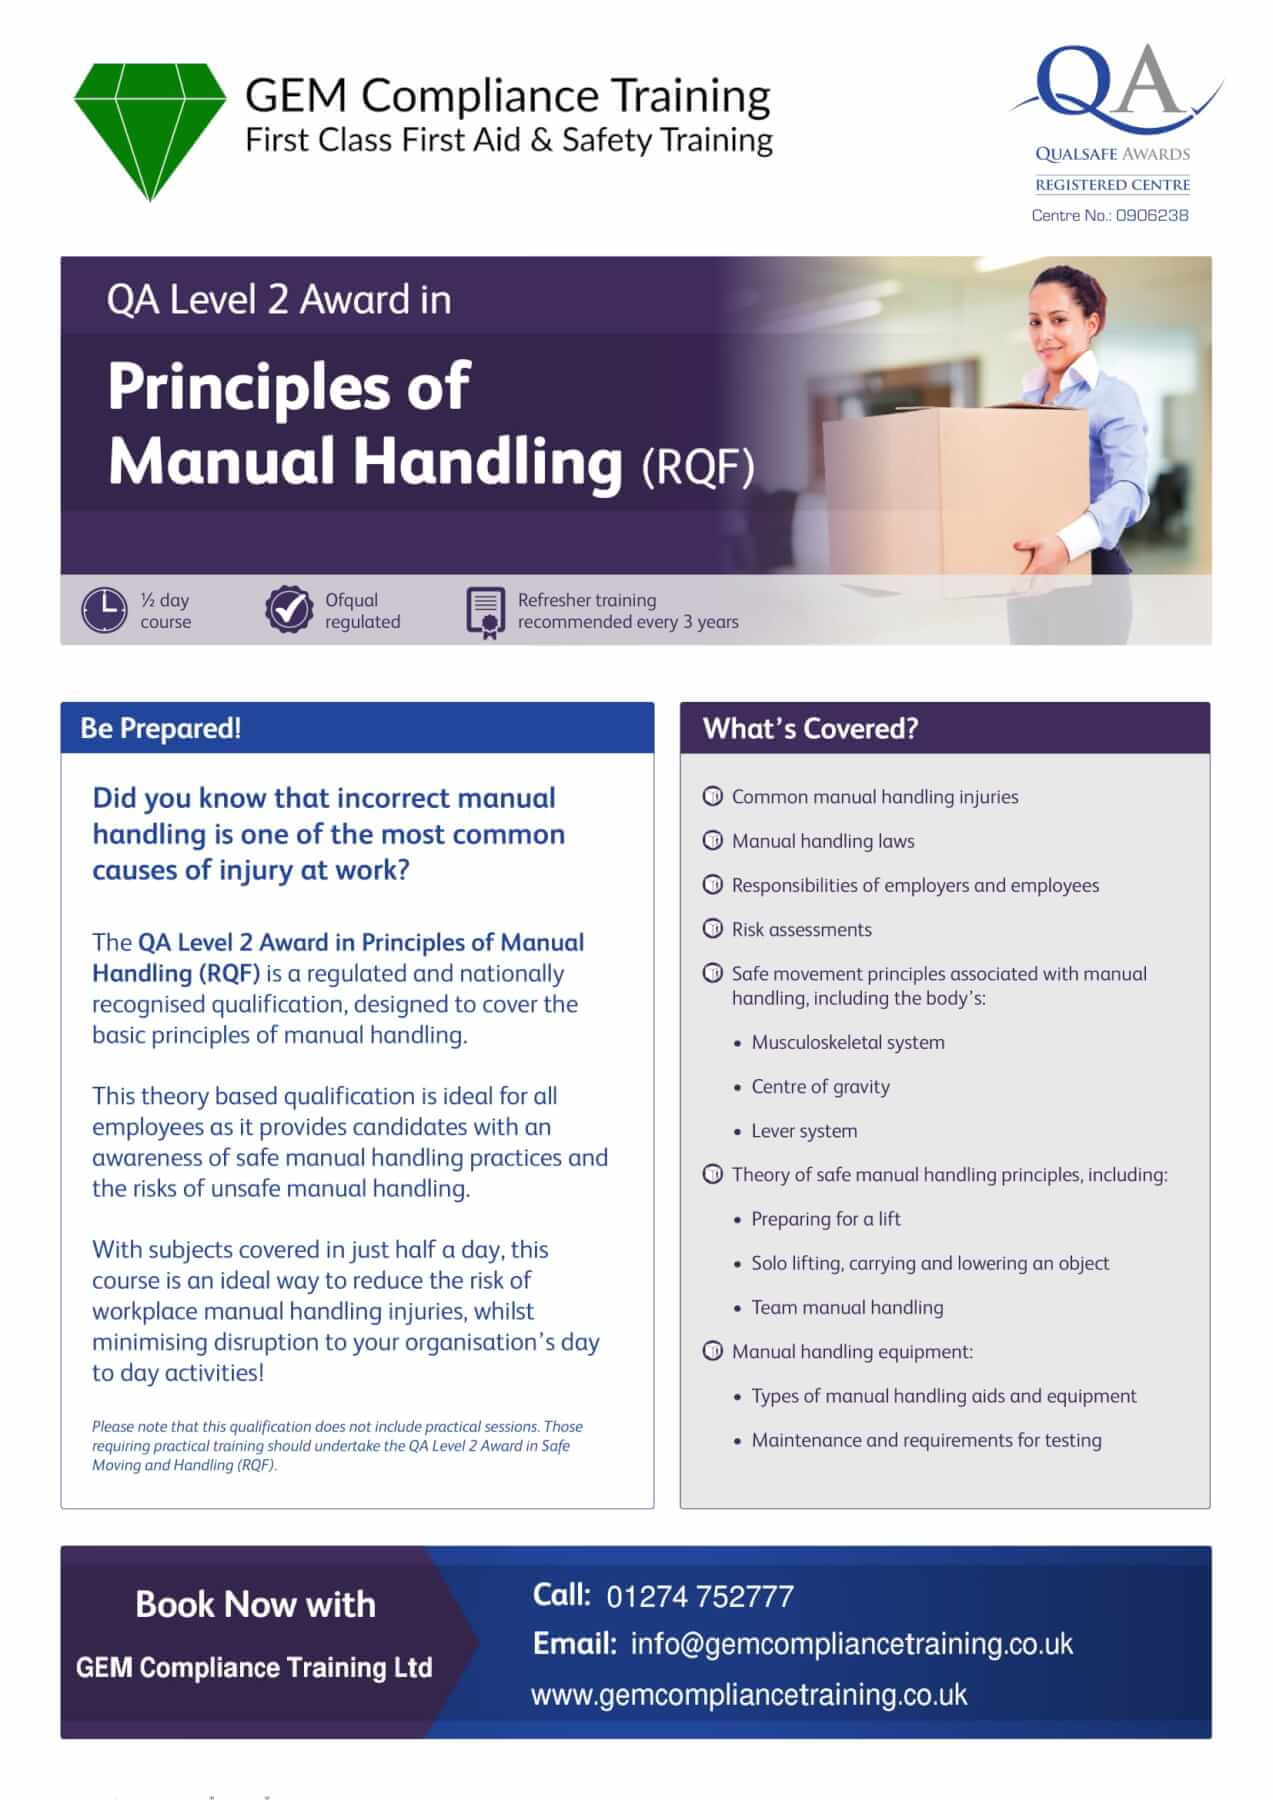 Principles of Manual Handling